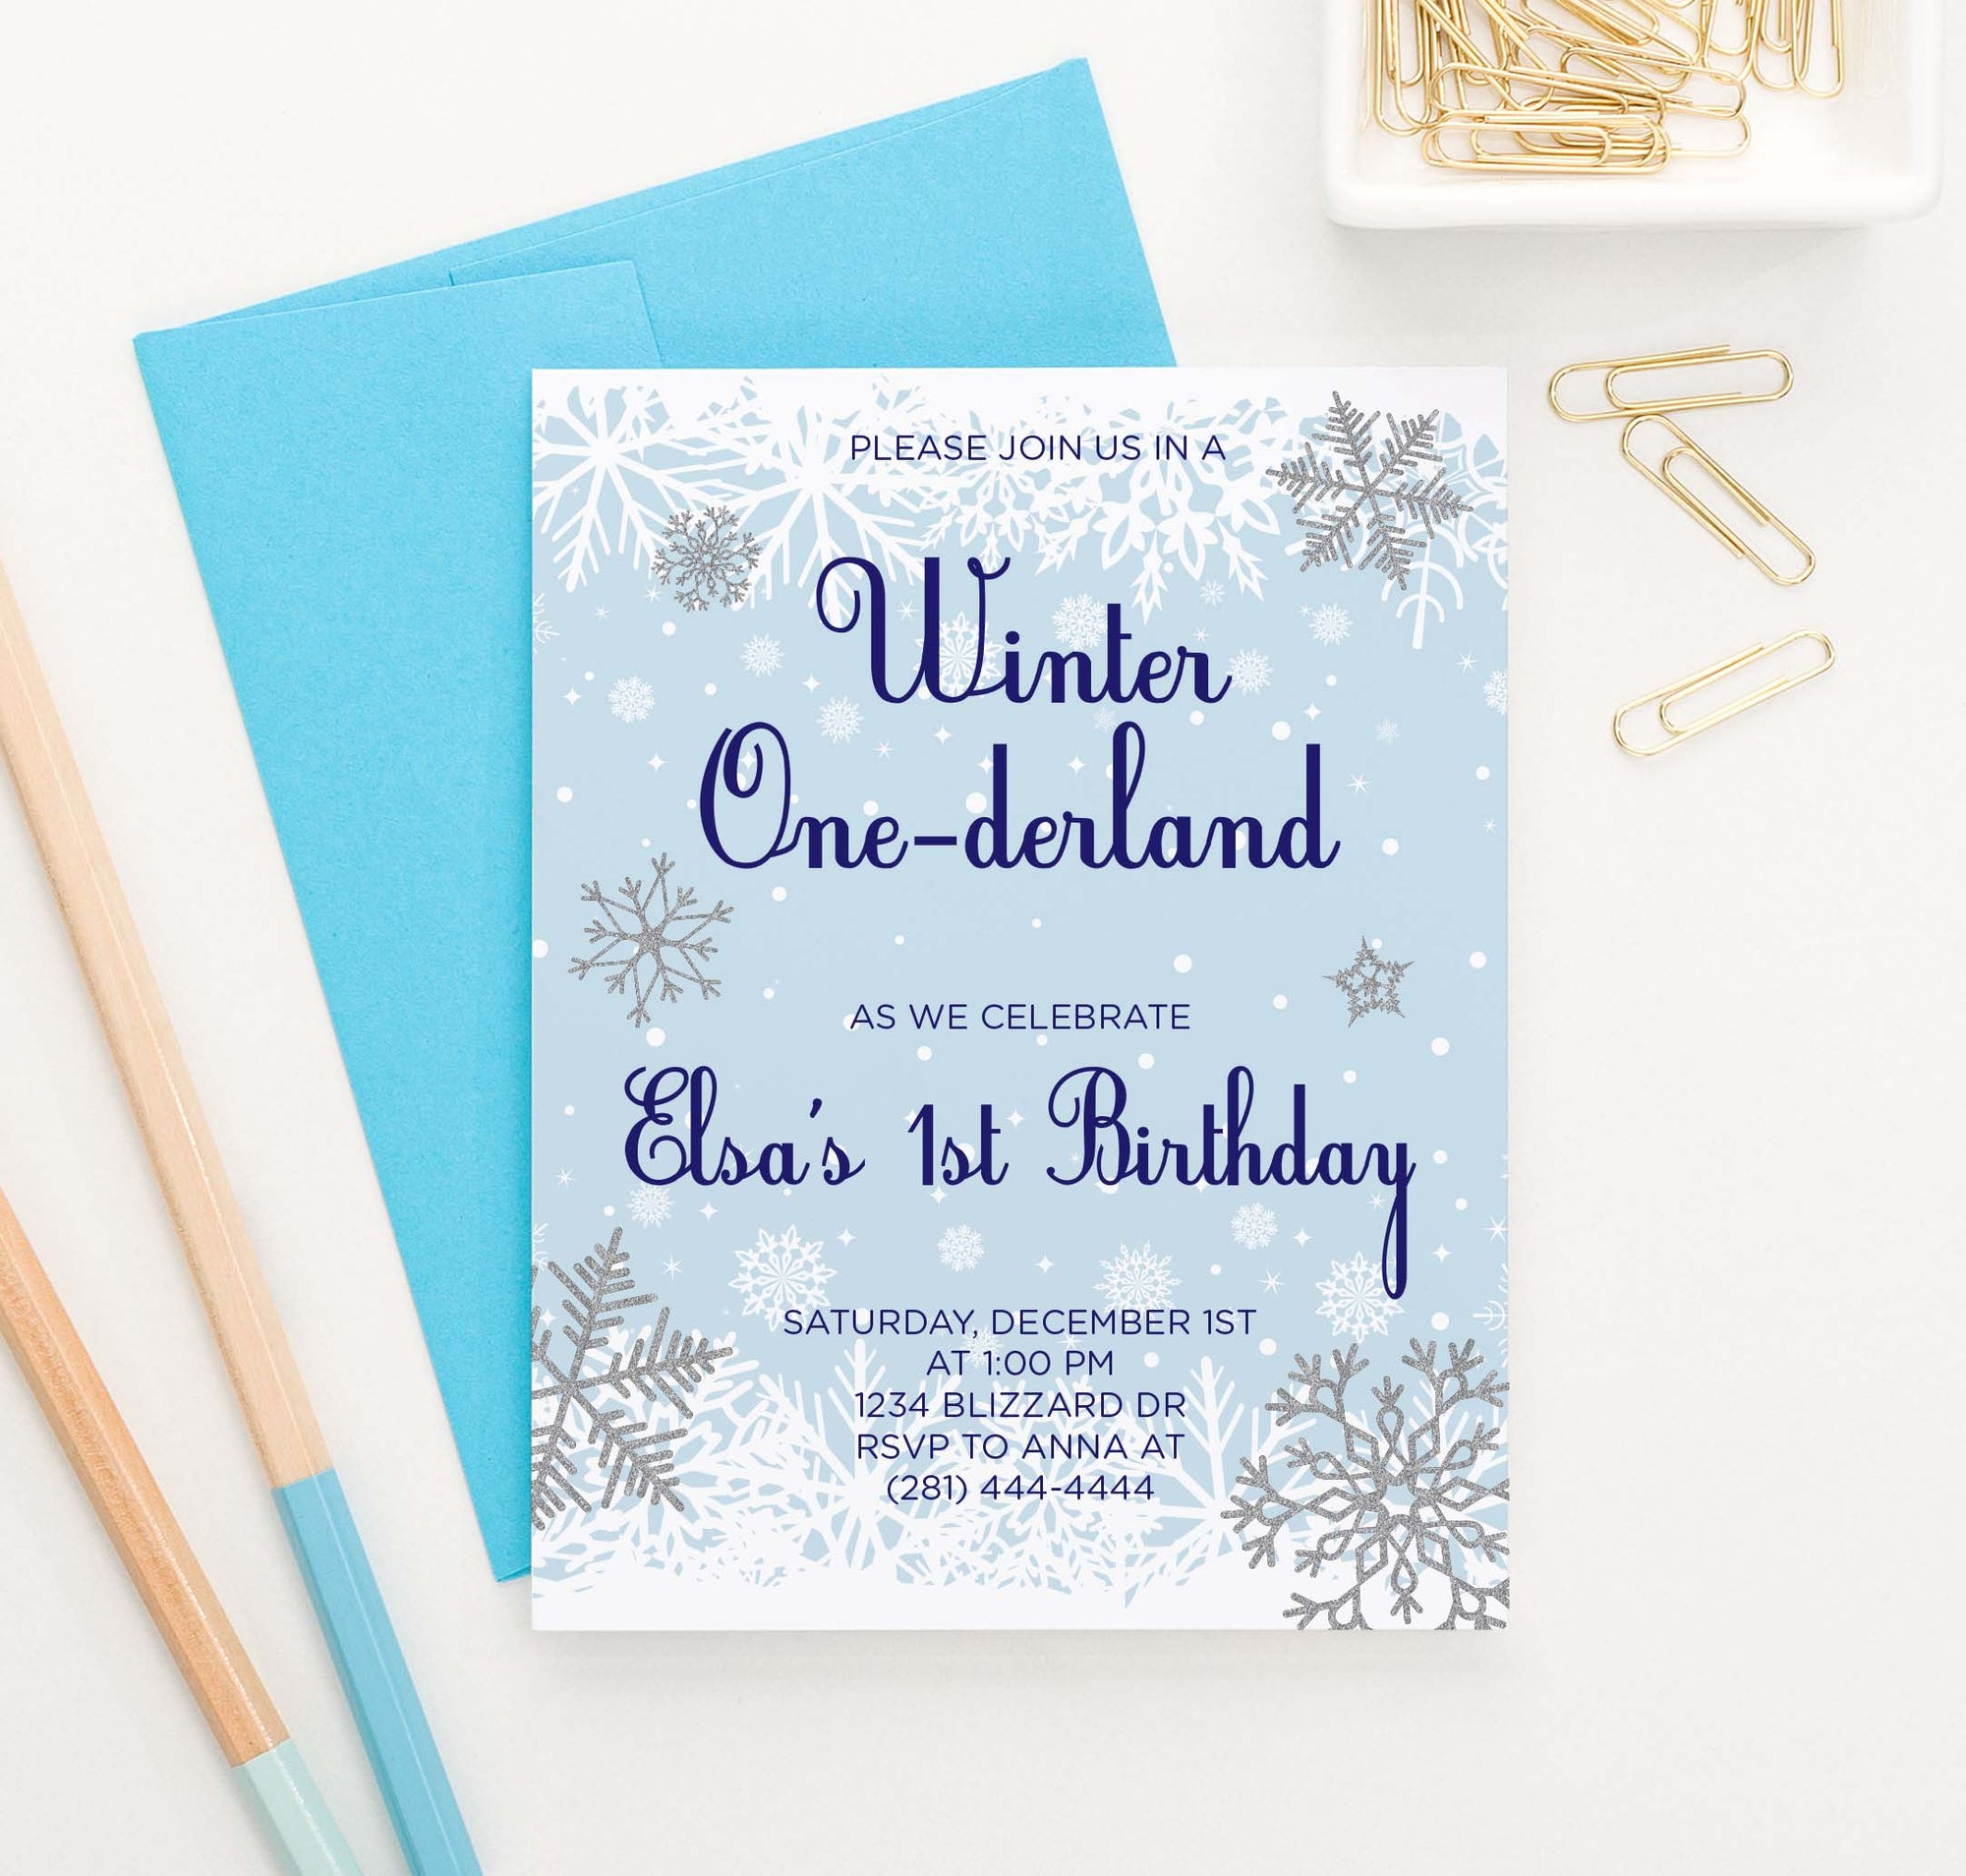 BI084 winter onederland birthday party invitation for kids snowflakes snow blue